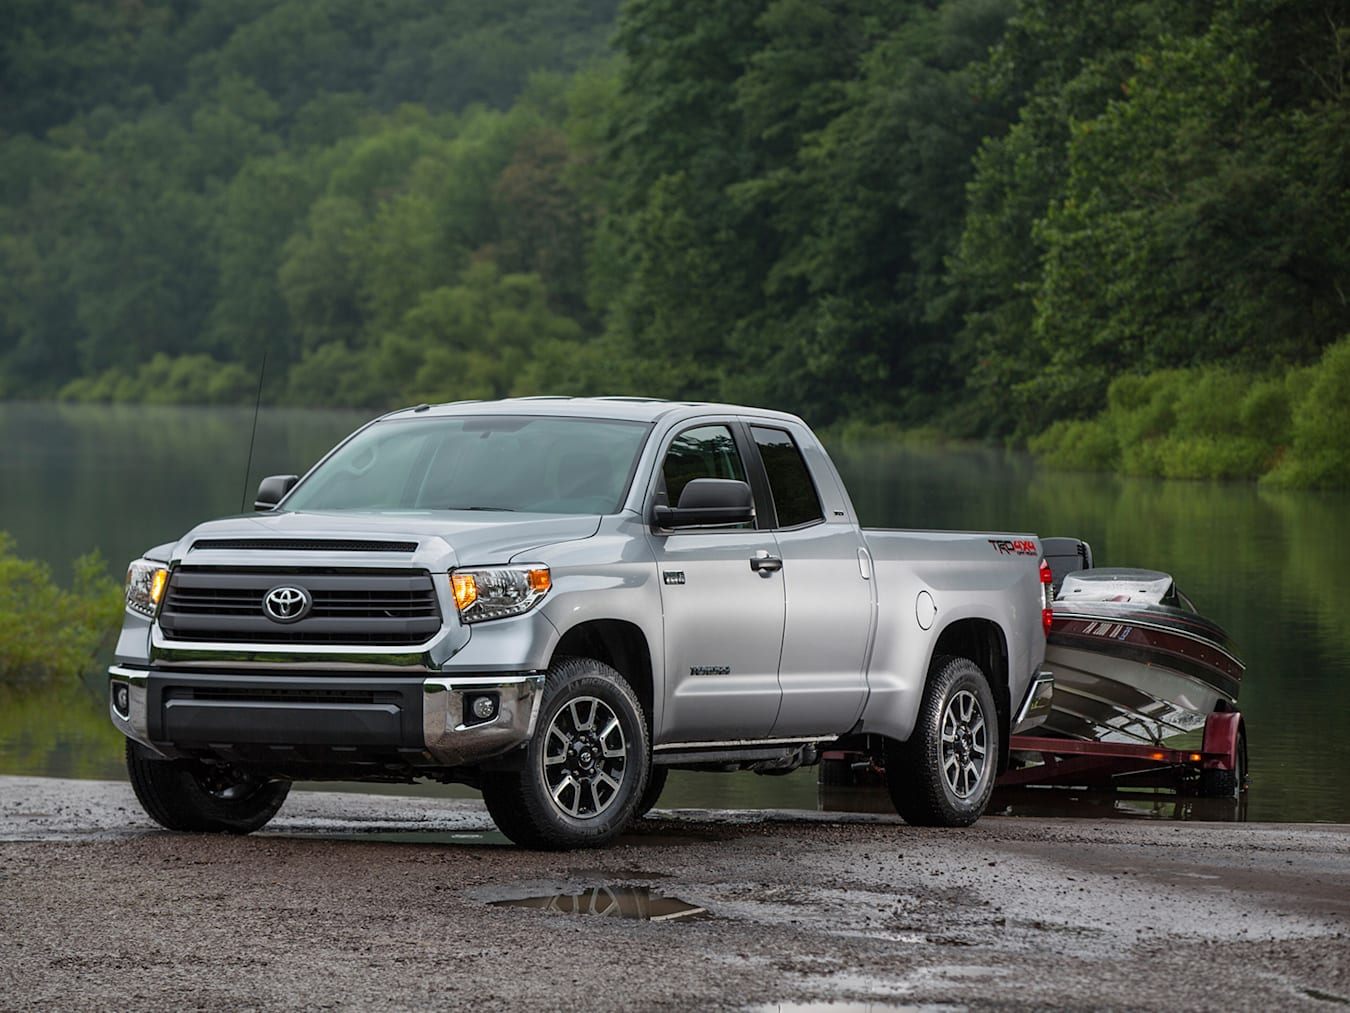 Toyota Tundra towing a speed boat